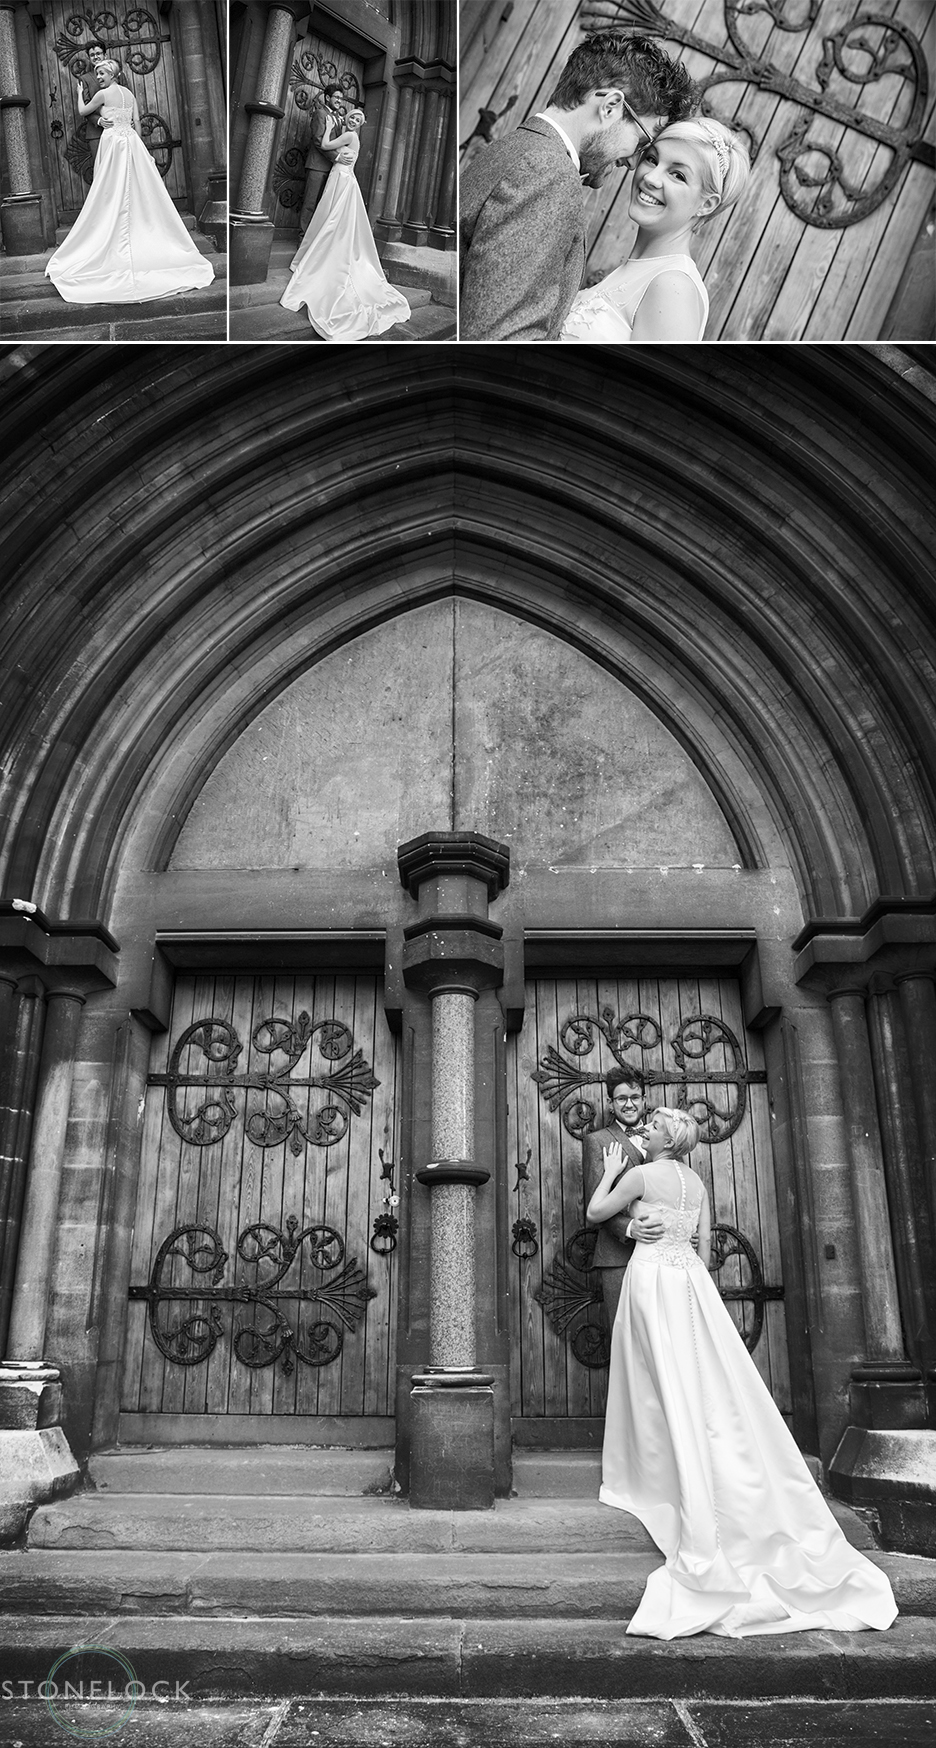 The bride and groom pose for some wedding photos outside Woodlands Church in Bristol after their wedding ceremony. The photos are in black and white.